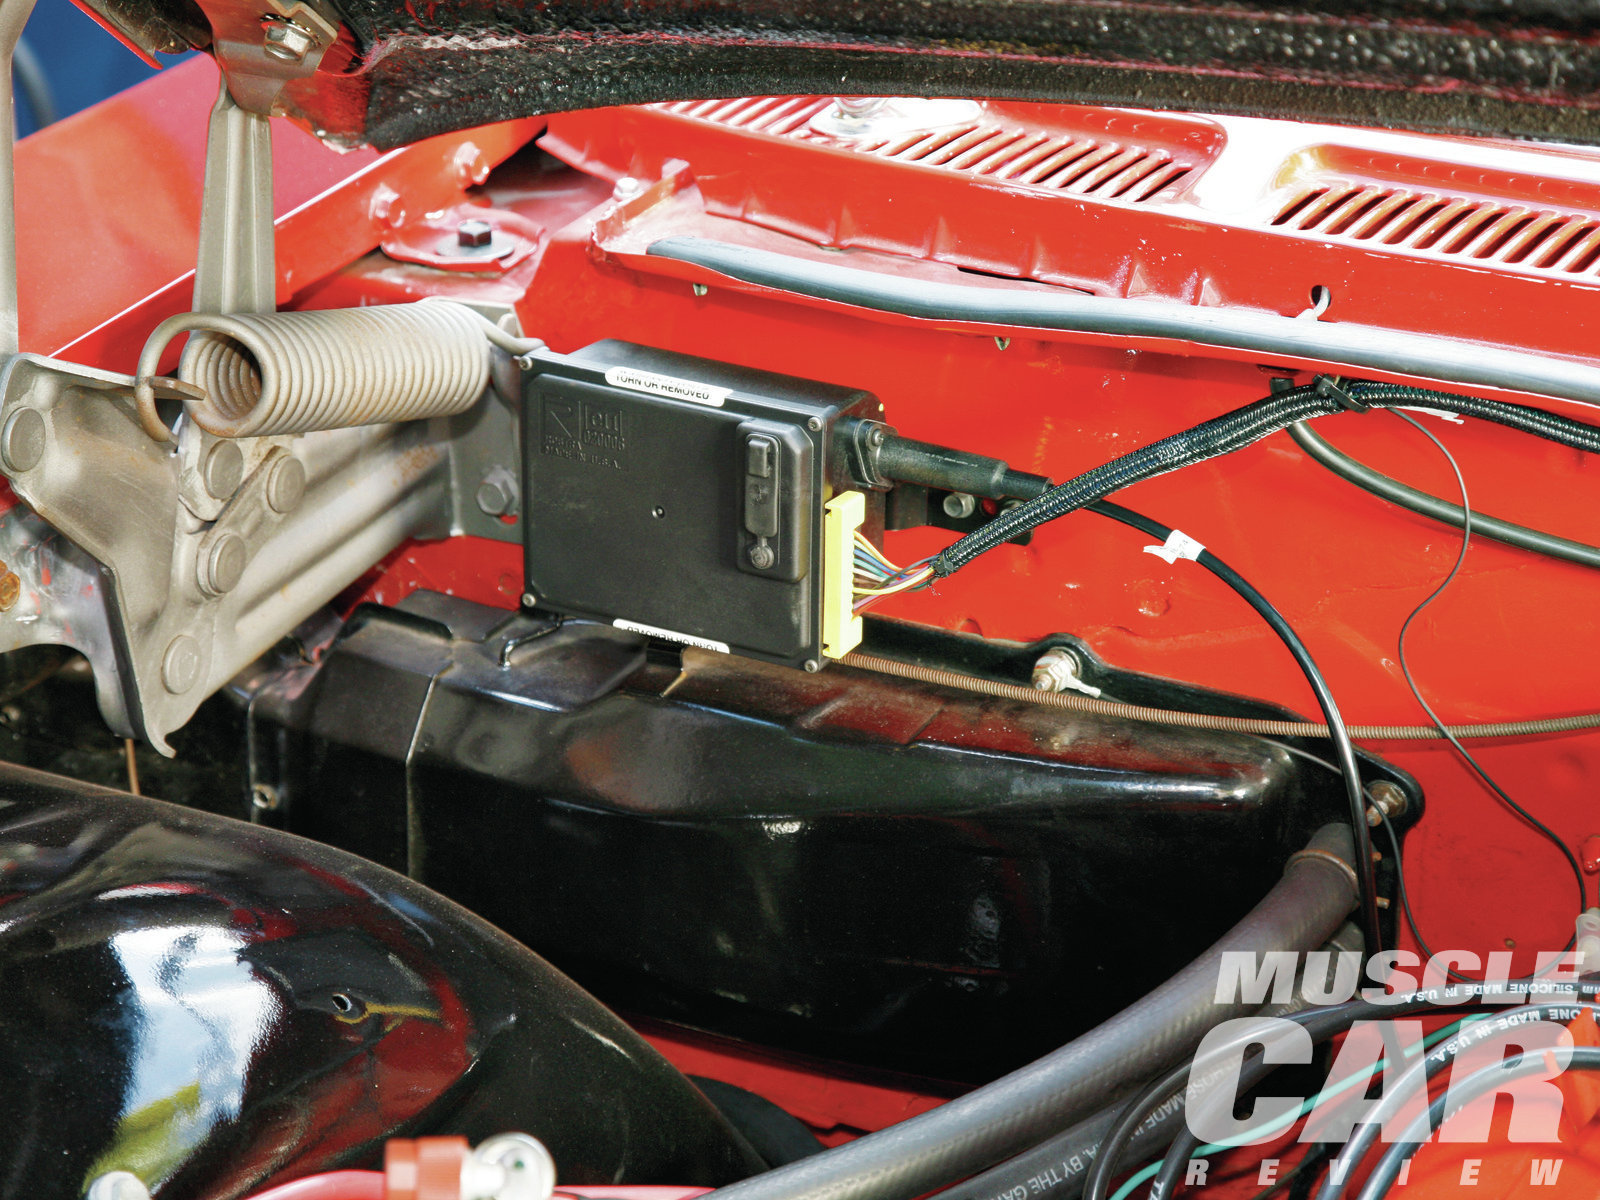 Dakota Digital's compact cruise-control module can be mounted almost anywhere in the engine compartment. We chose the area above the heater box on the firewall. It allowed for easy routing of the throttle cable and wiring.